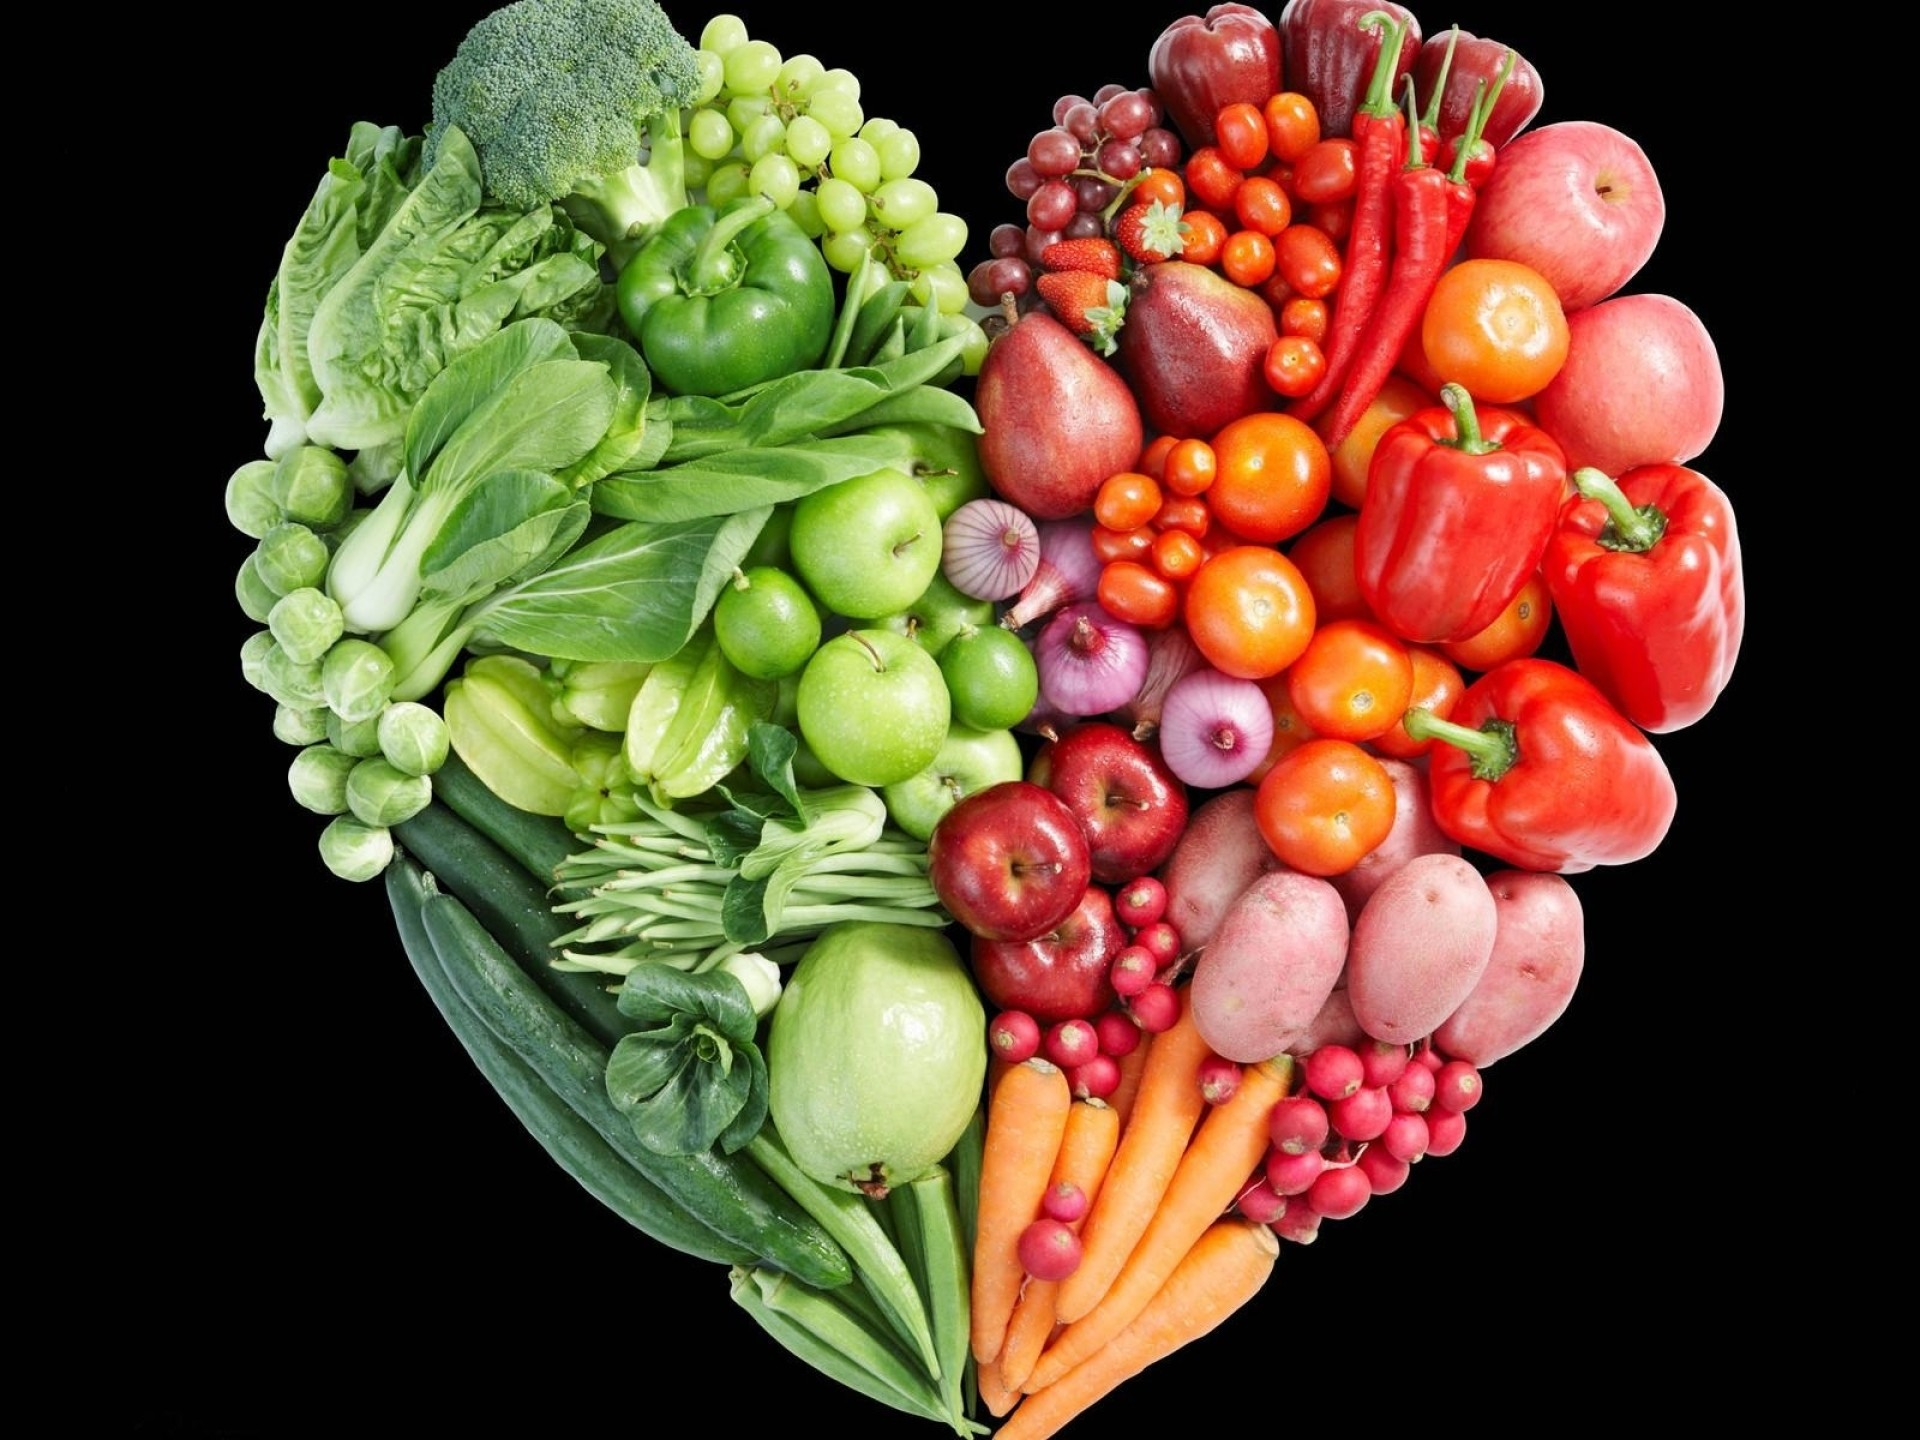 1920x1440 Previous: Vegetable & Fruit Heart ...